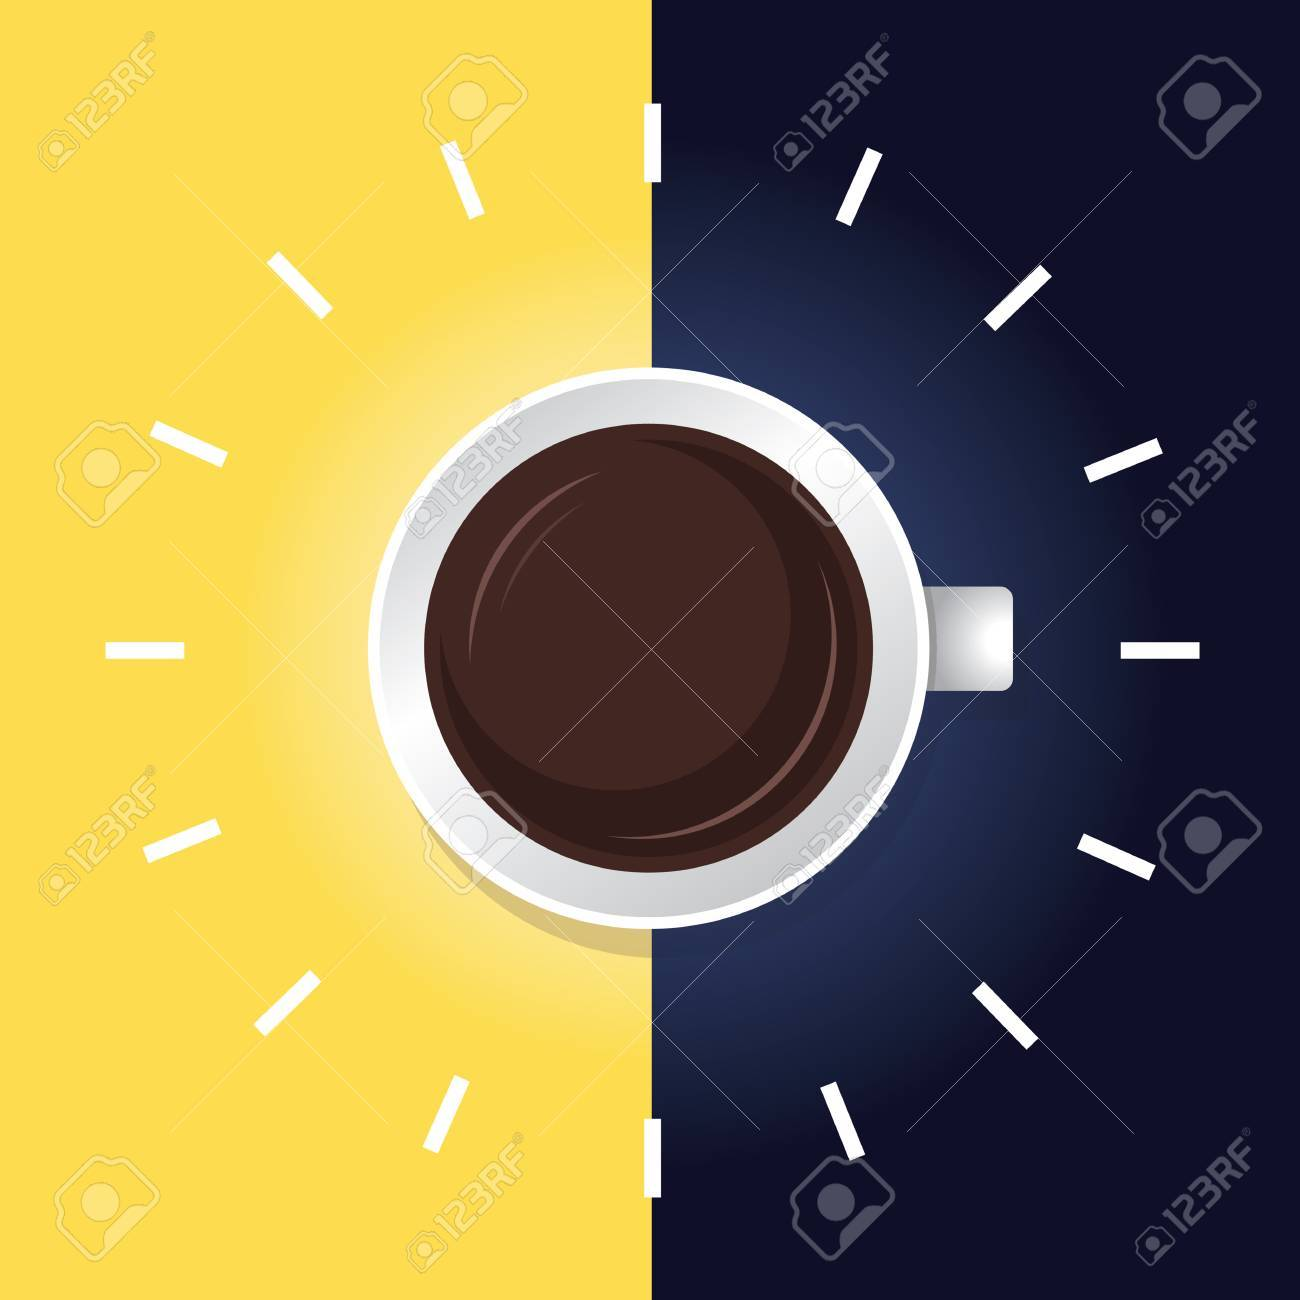 Coffee time day night Stock Vector - 28460696